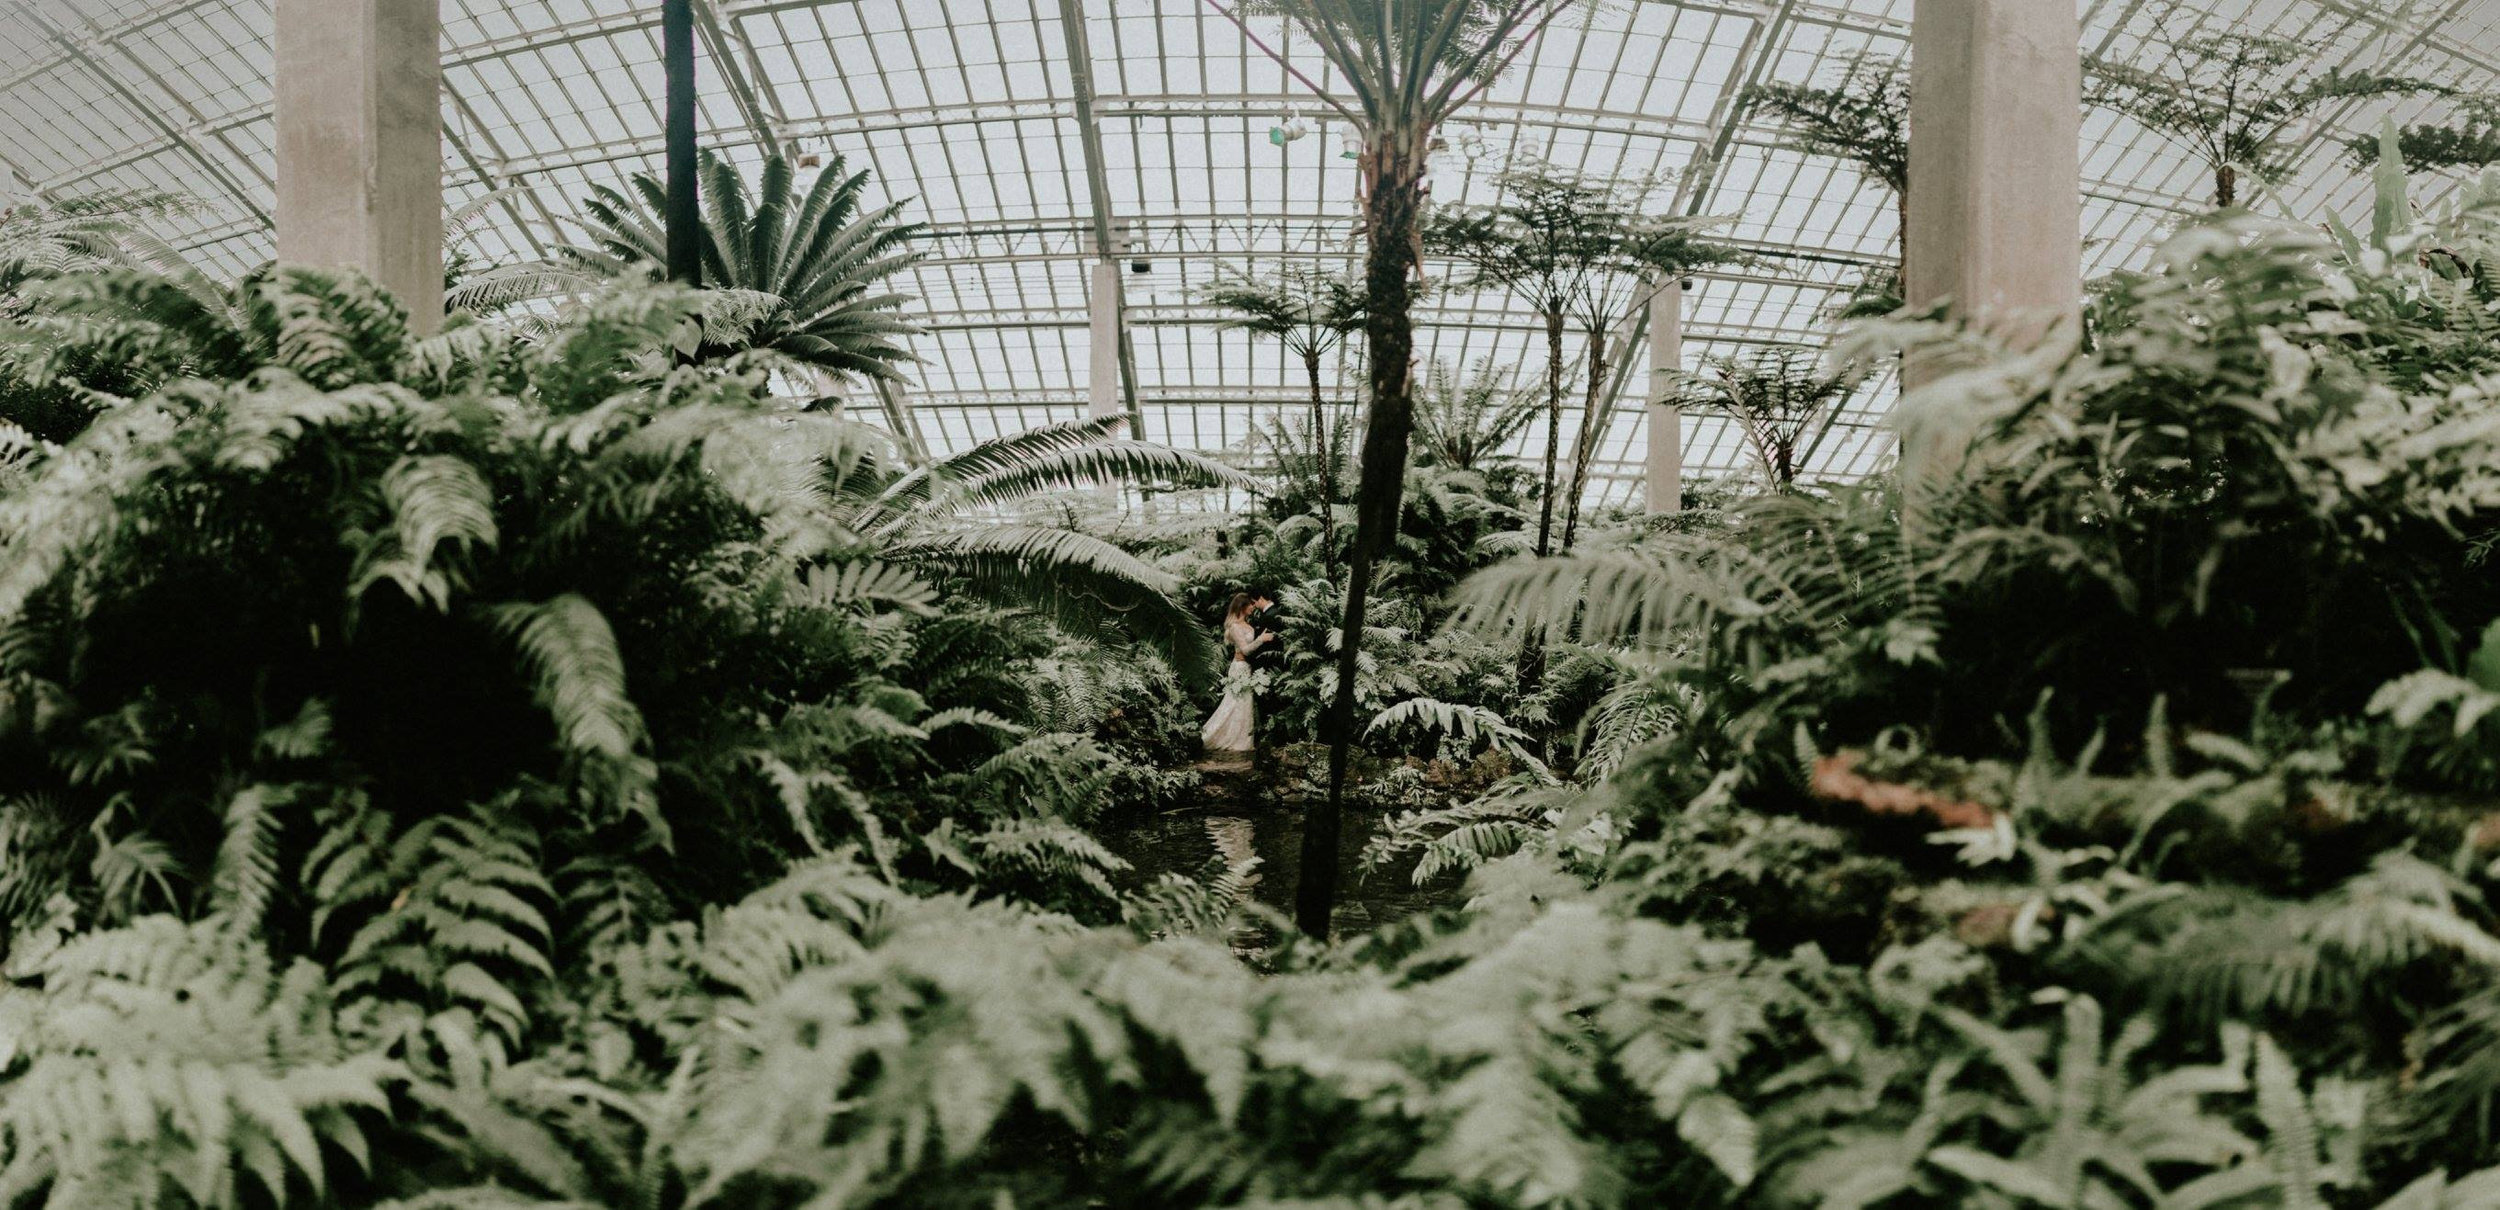 Andrea & Jason Shipbaugh - Garfield Park Conservatory - One of my favorites only got 39 Likes